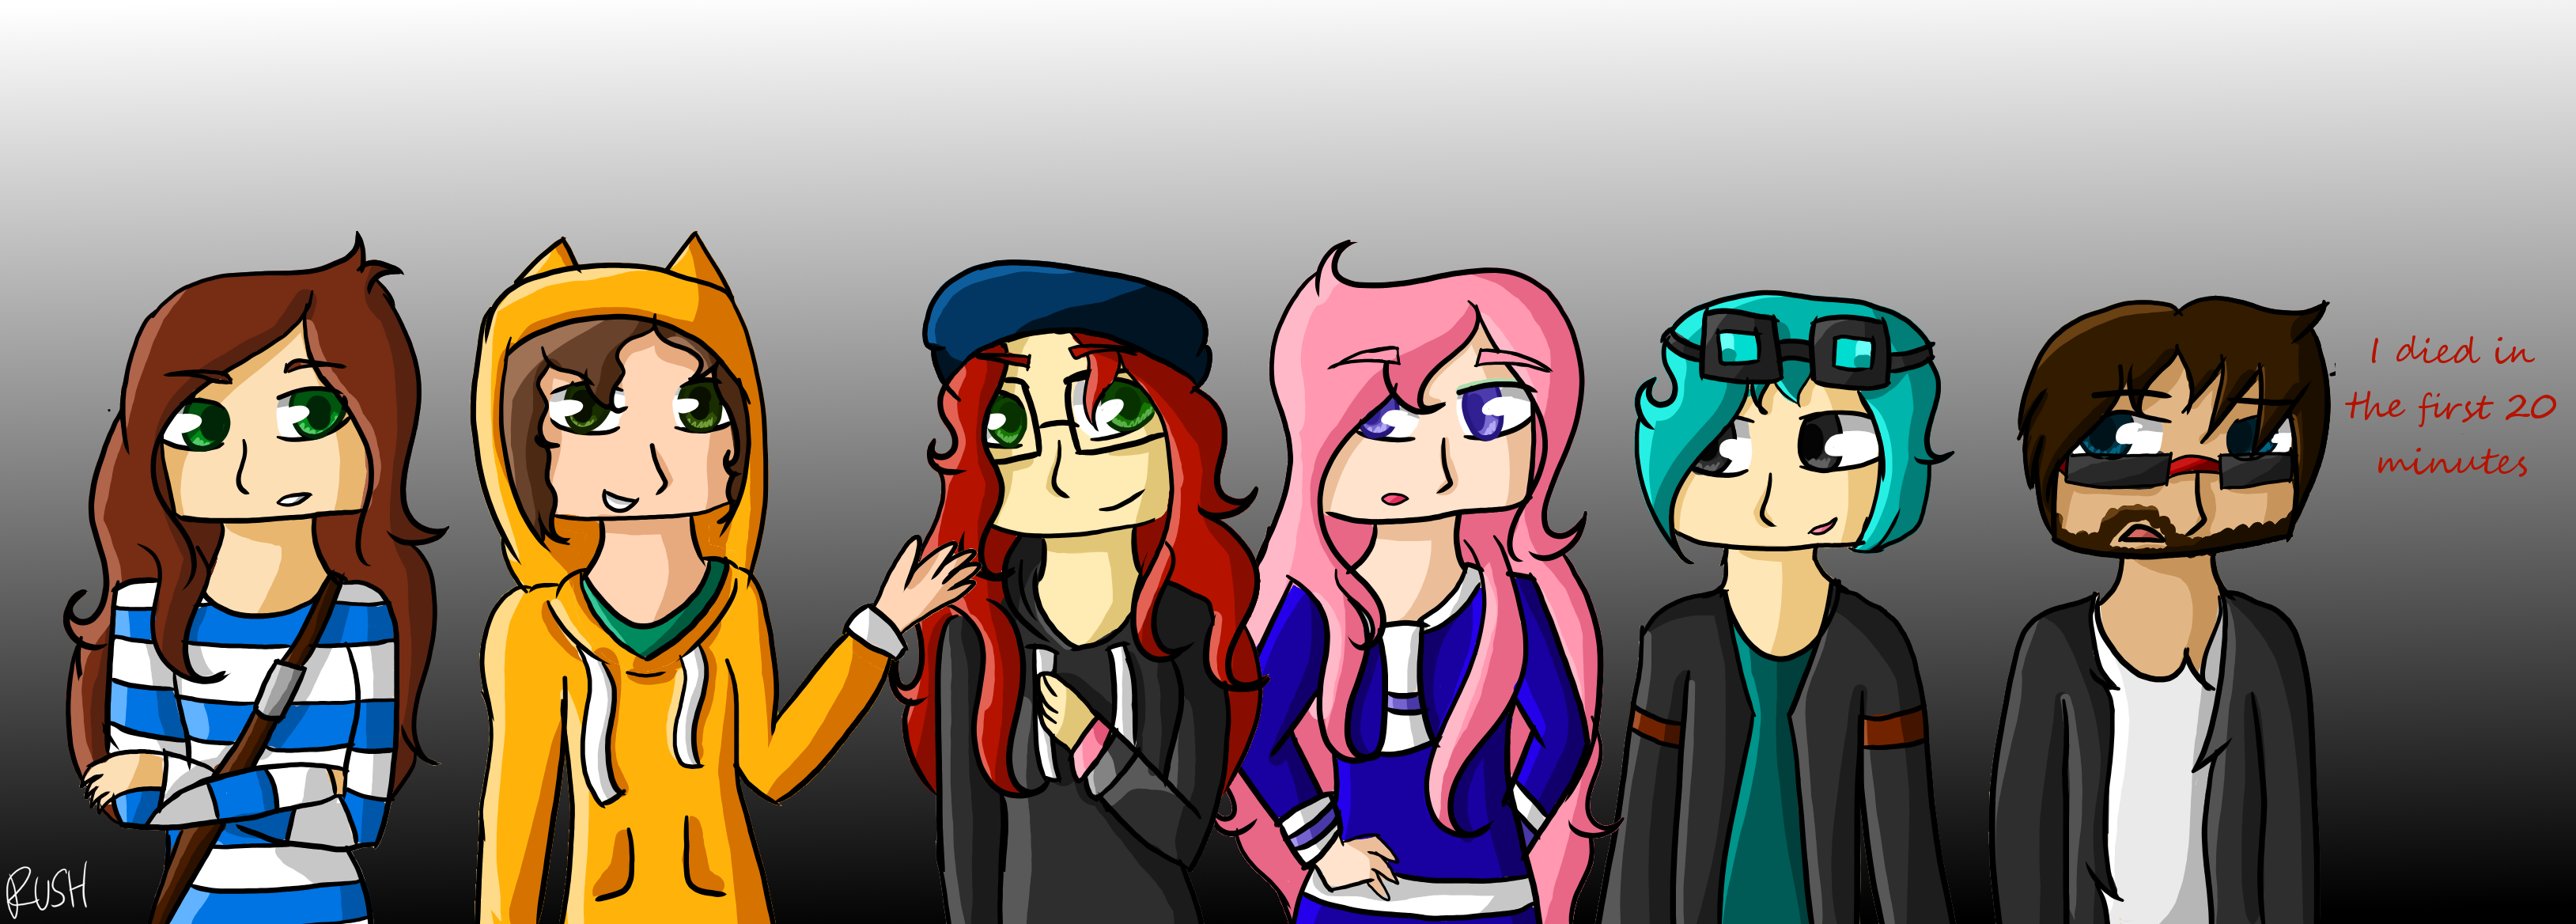 ep 6 YouTubers by RushDoesNotArt ep 6 YouTubers by RushDoesNotArt